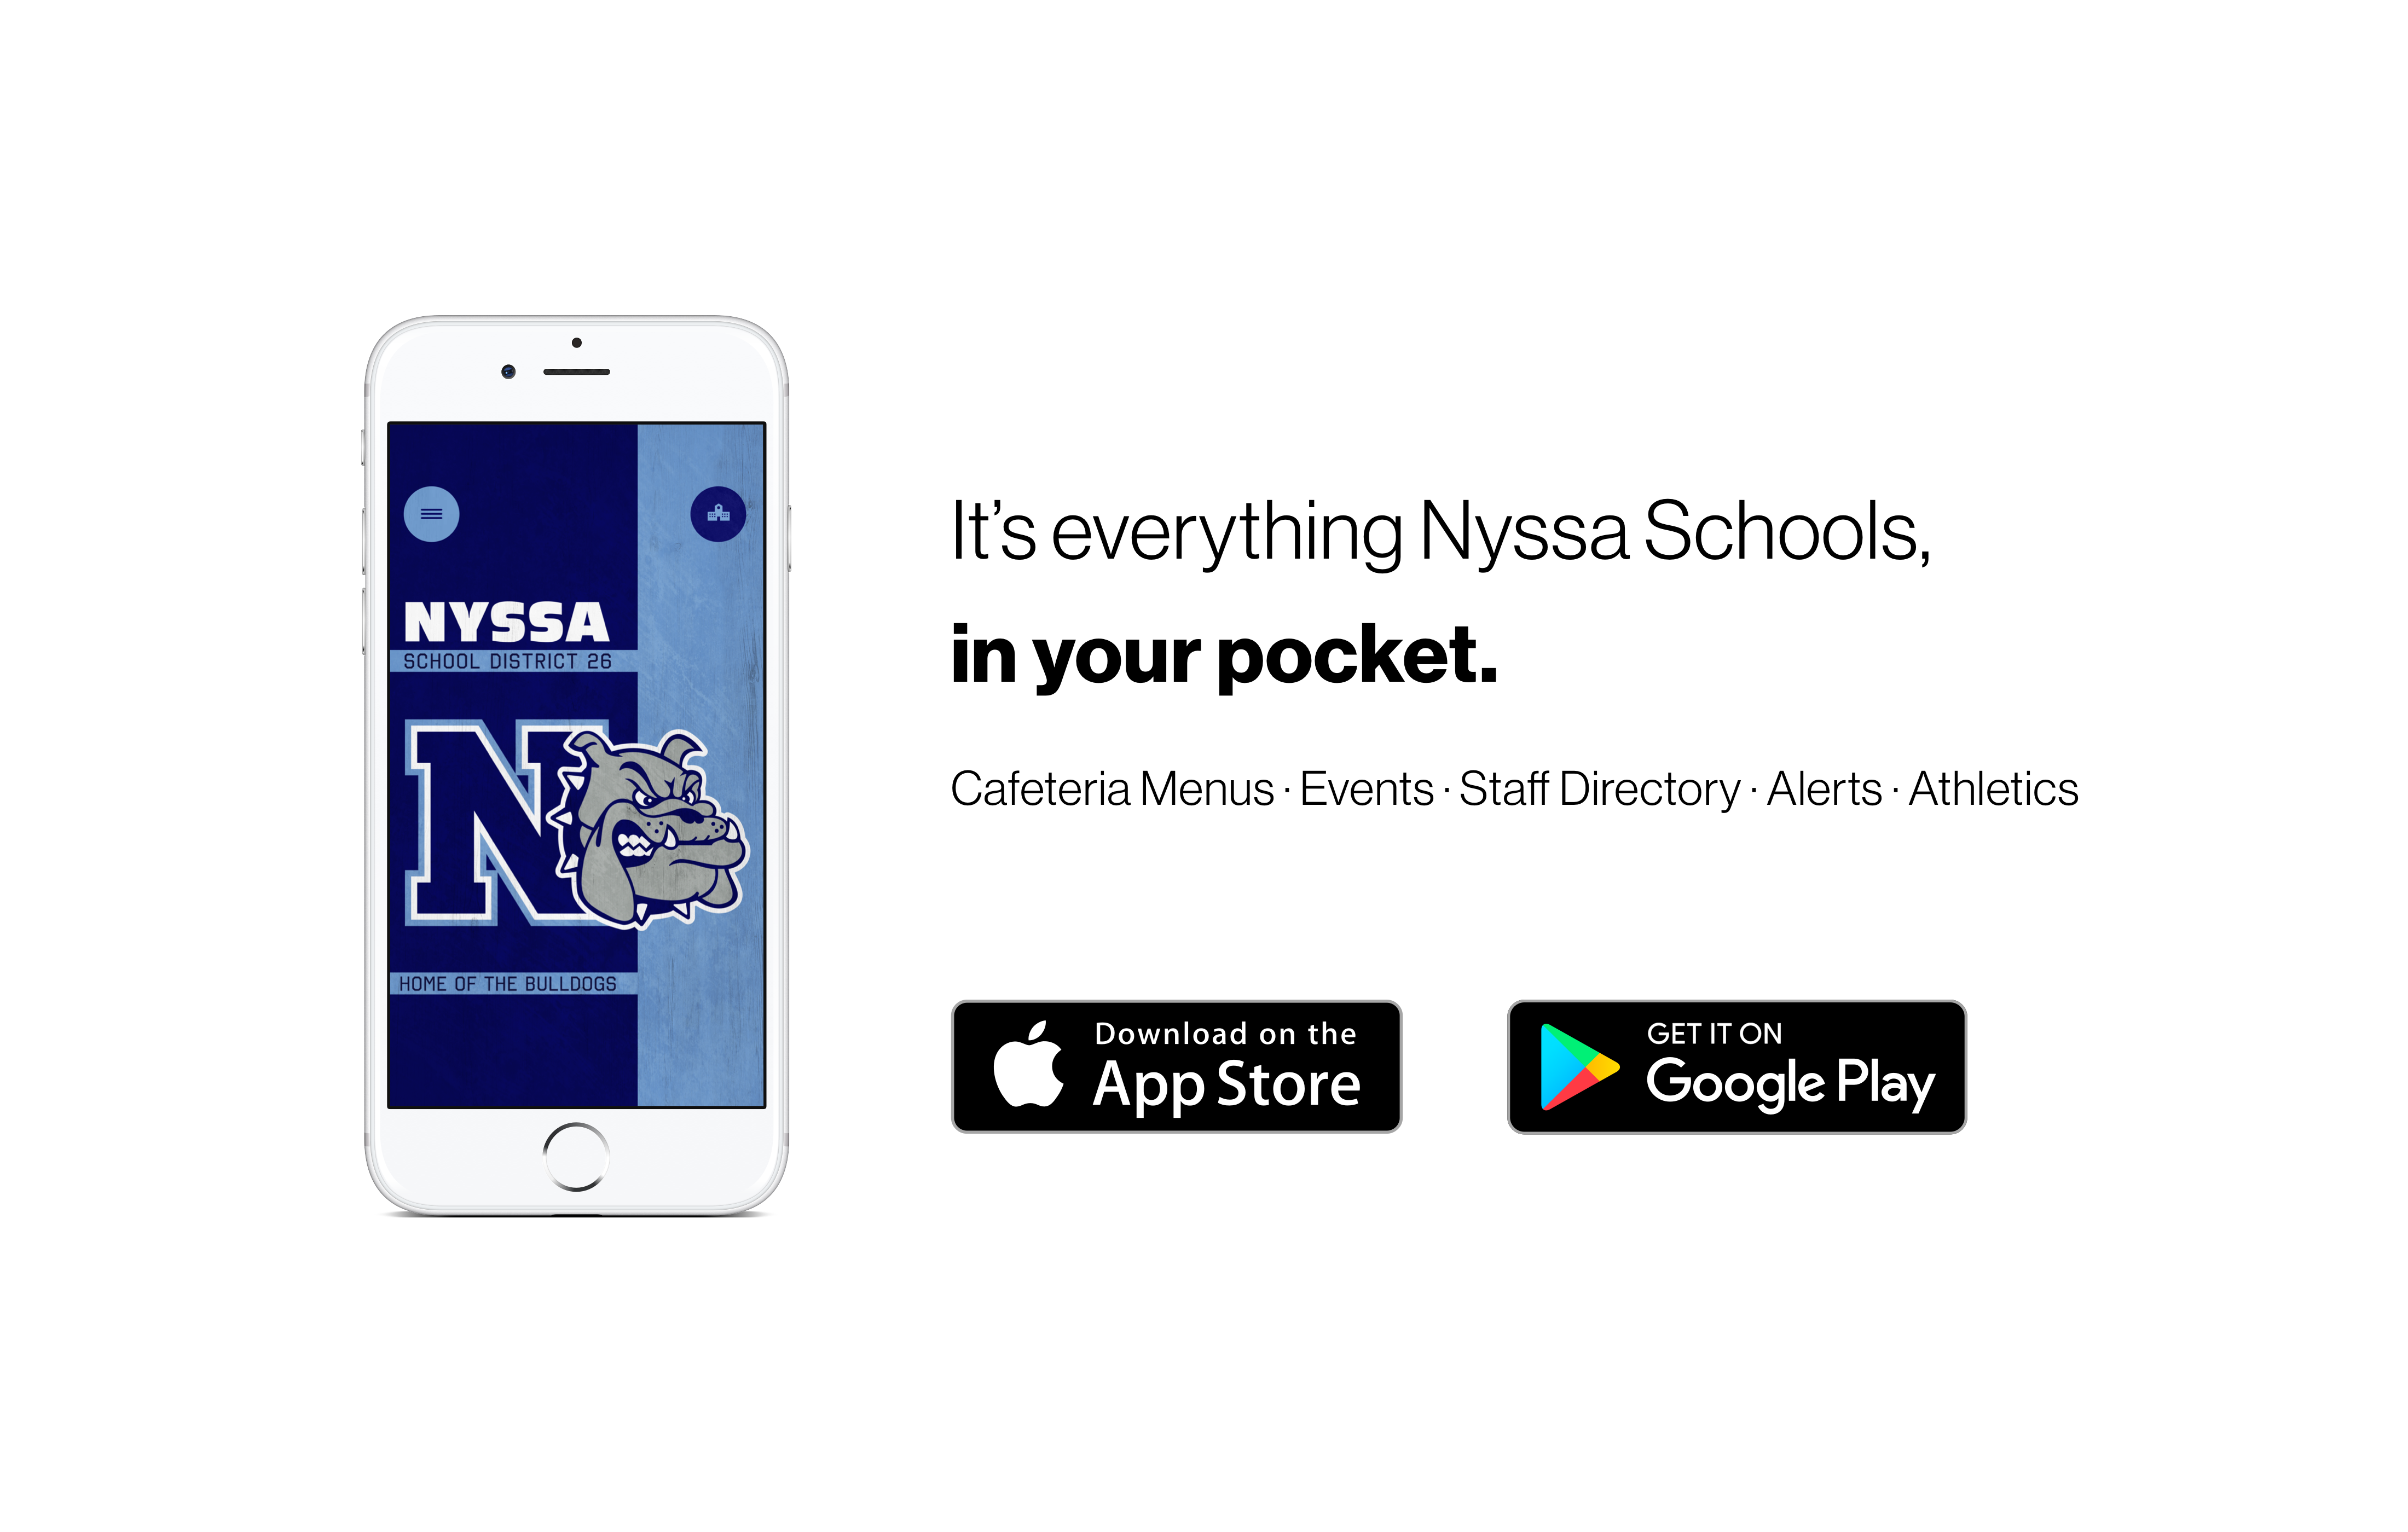 It's everything Nyssa Schools, in your pocket